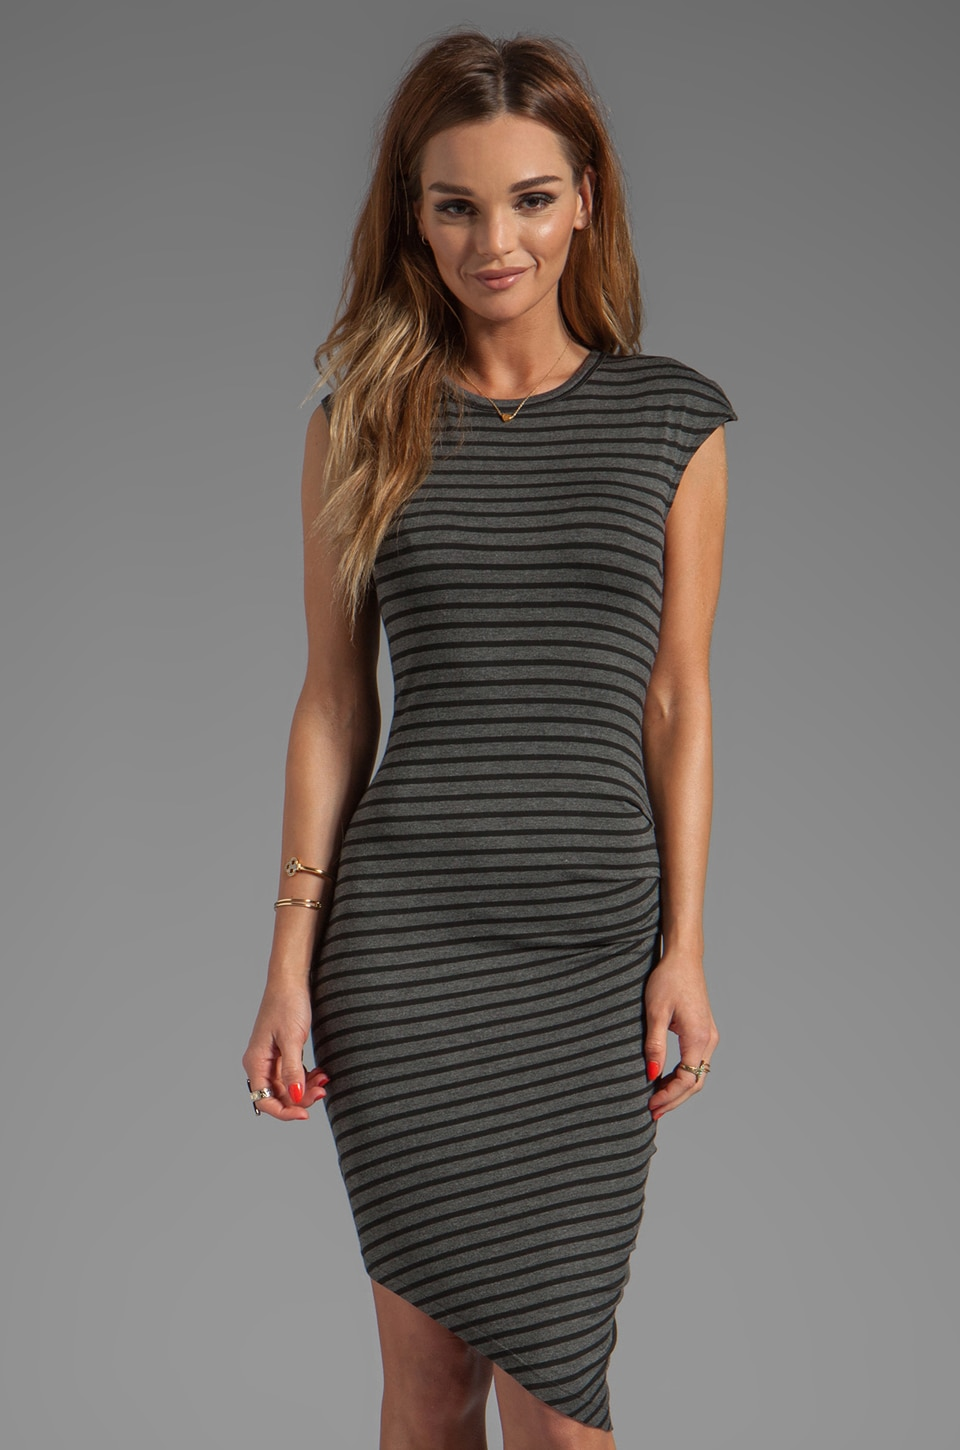 Kain Mays Dress in Charcoal/Black Stripe